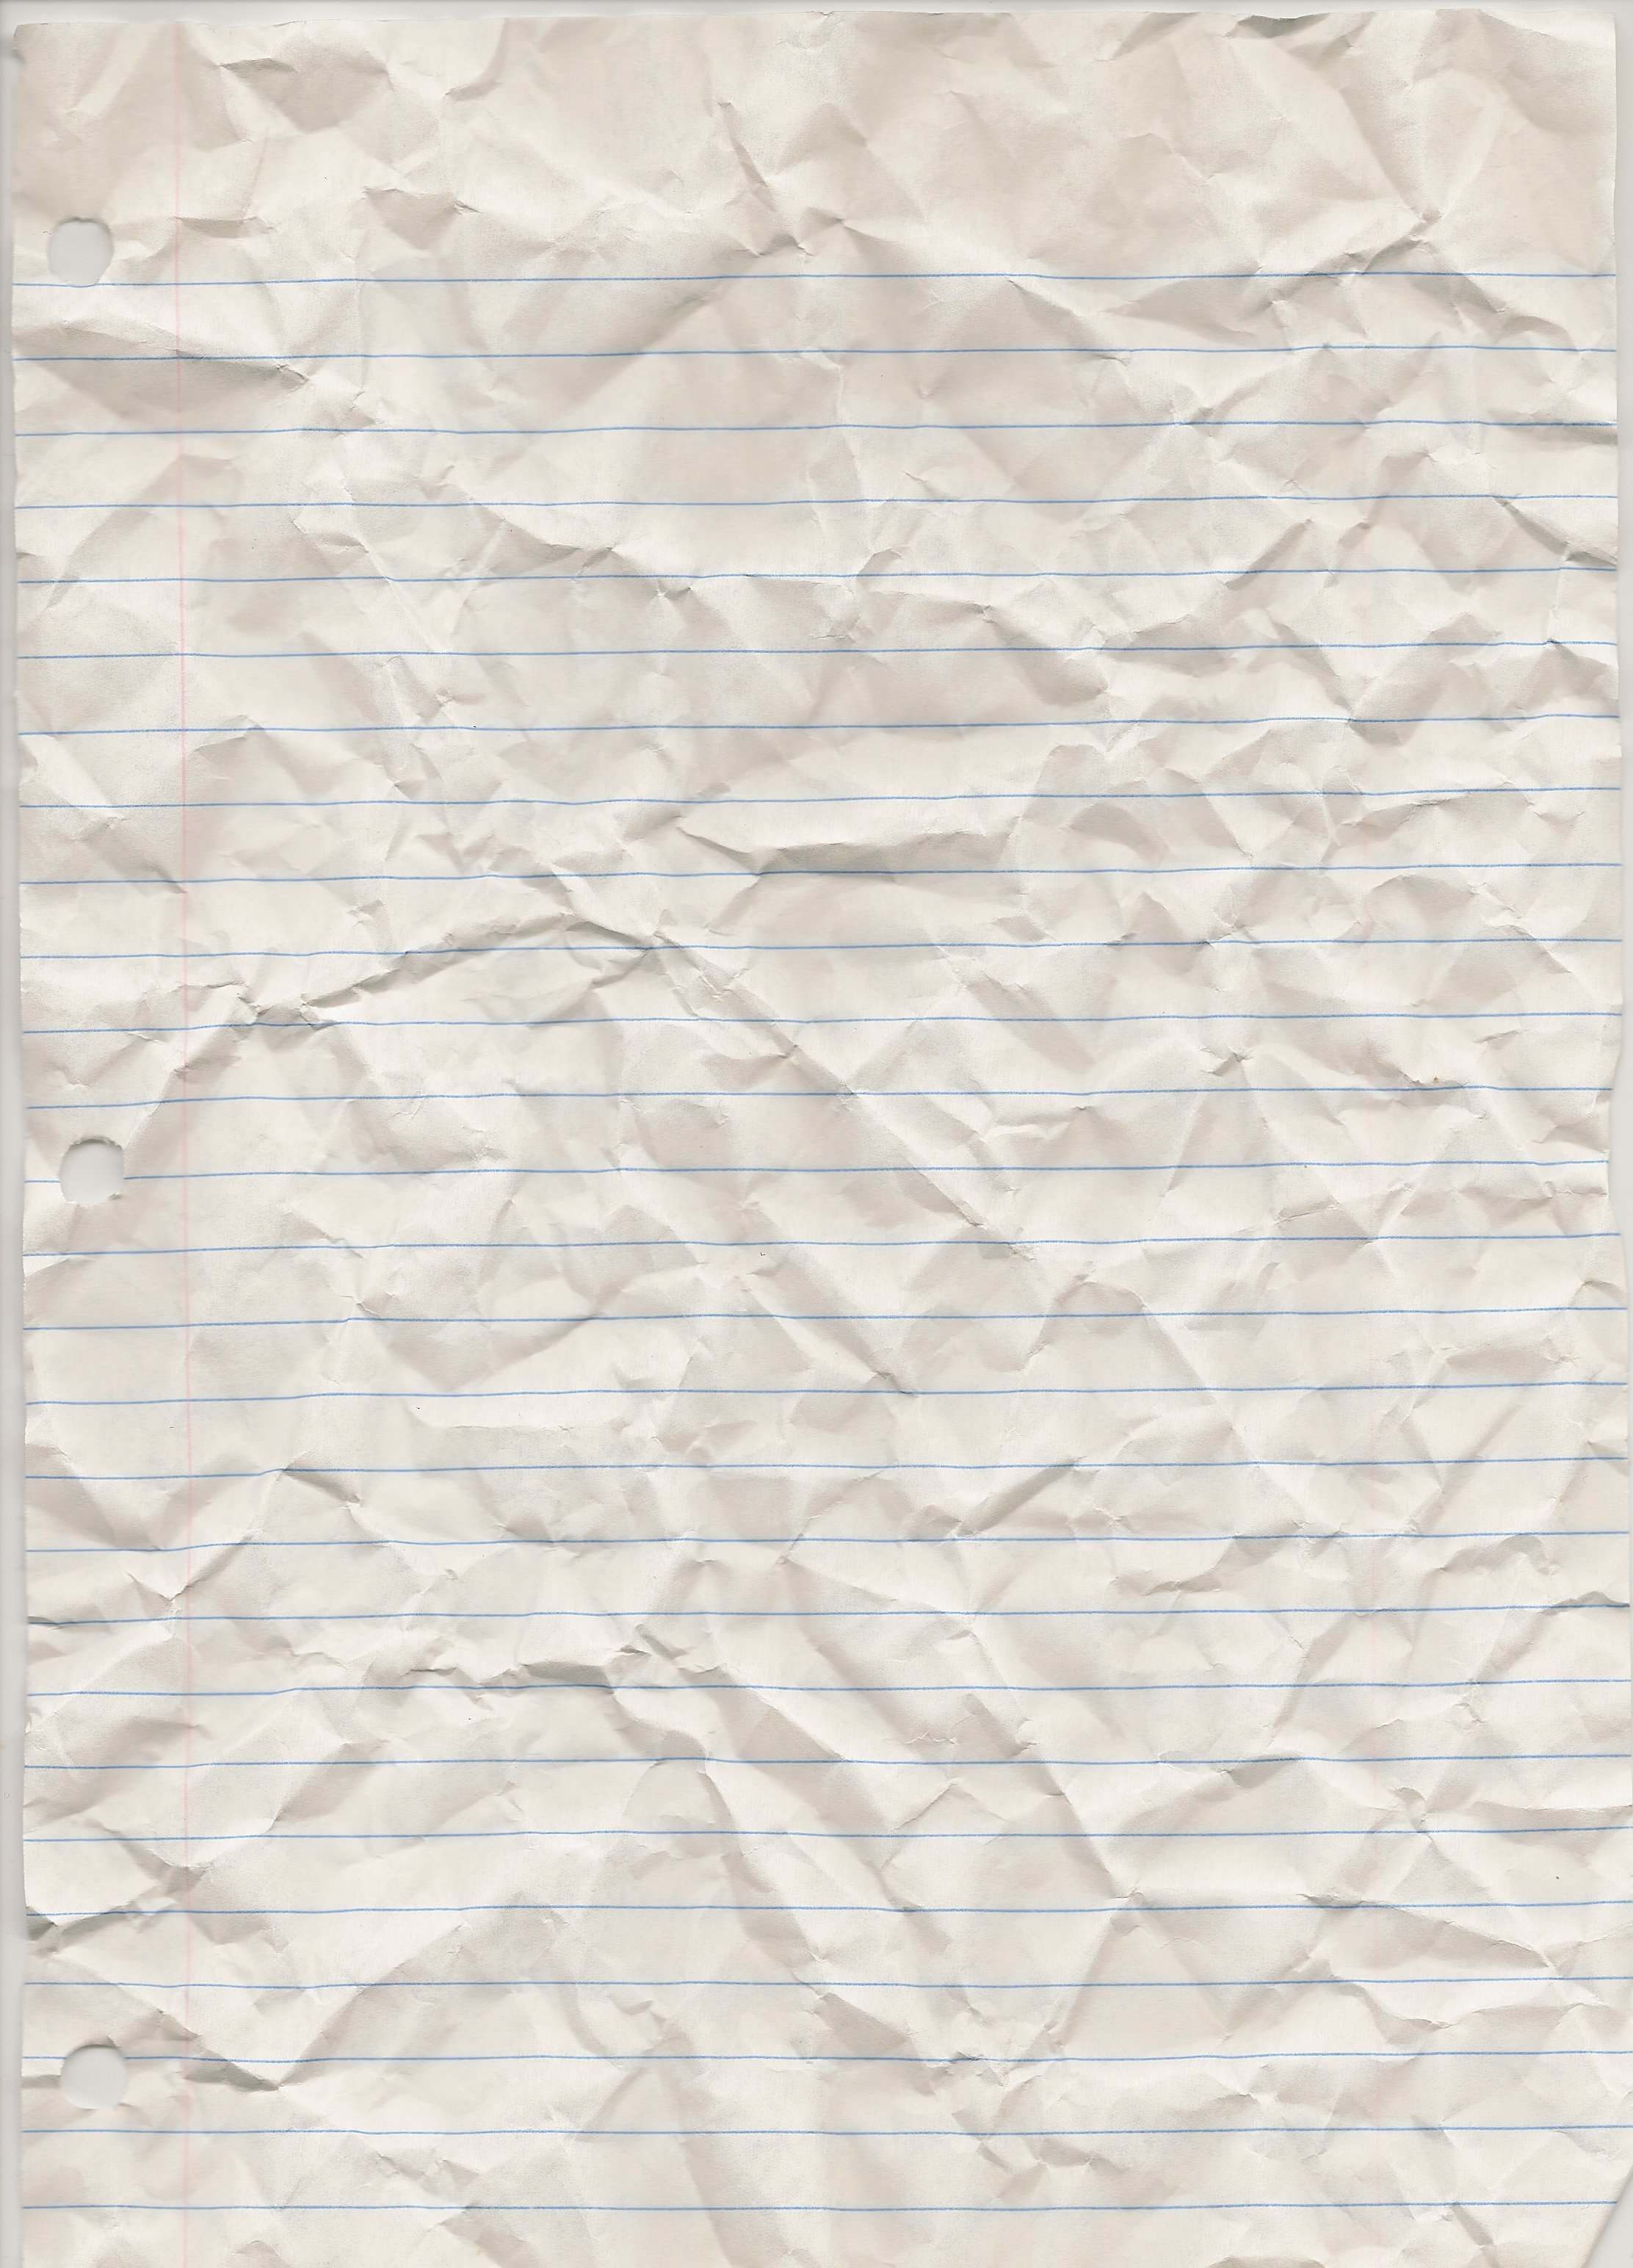 Hi-Res Lined Paper Texture by ze-r-o on DeviantArt